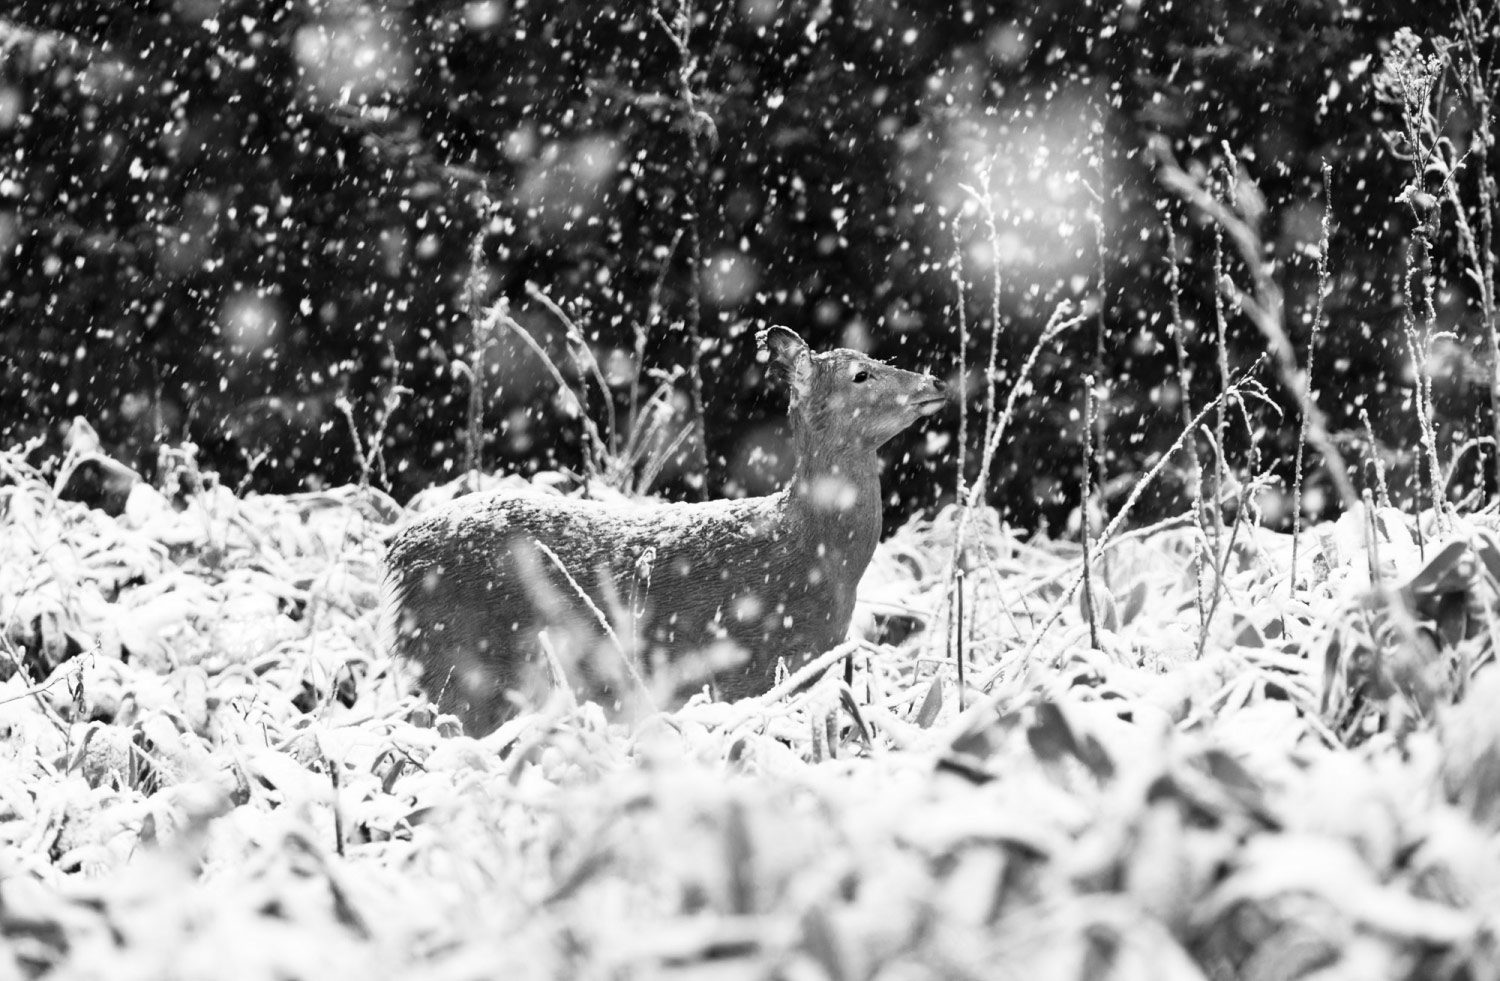 DEAR DEER In Snow, © Aya IWASAKI, 2nd Place, Professional - Abstract and Contemporary, Zebra Awards - TZIPAC Black and White Photographer of the Year